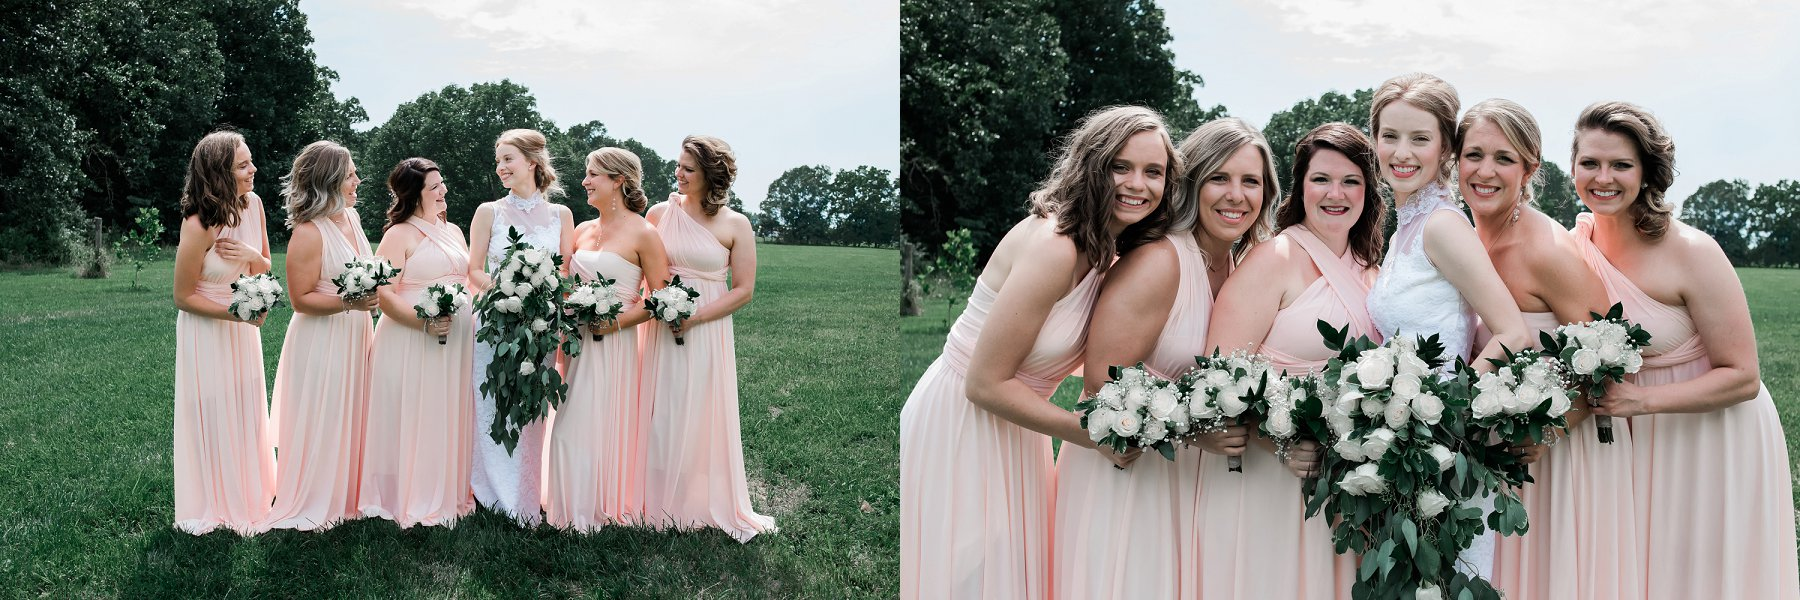 Outdoor Summer Wedding Photography in Kansas City by Merry Ohler, wedding photographer kansas city - 20